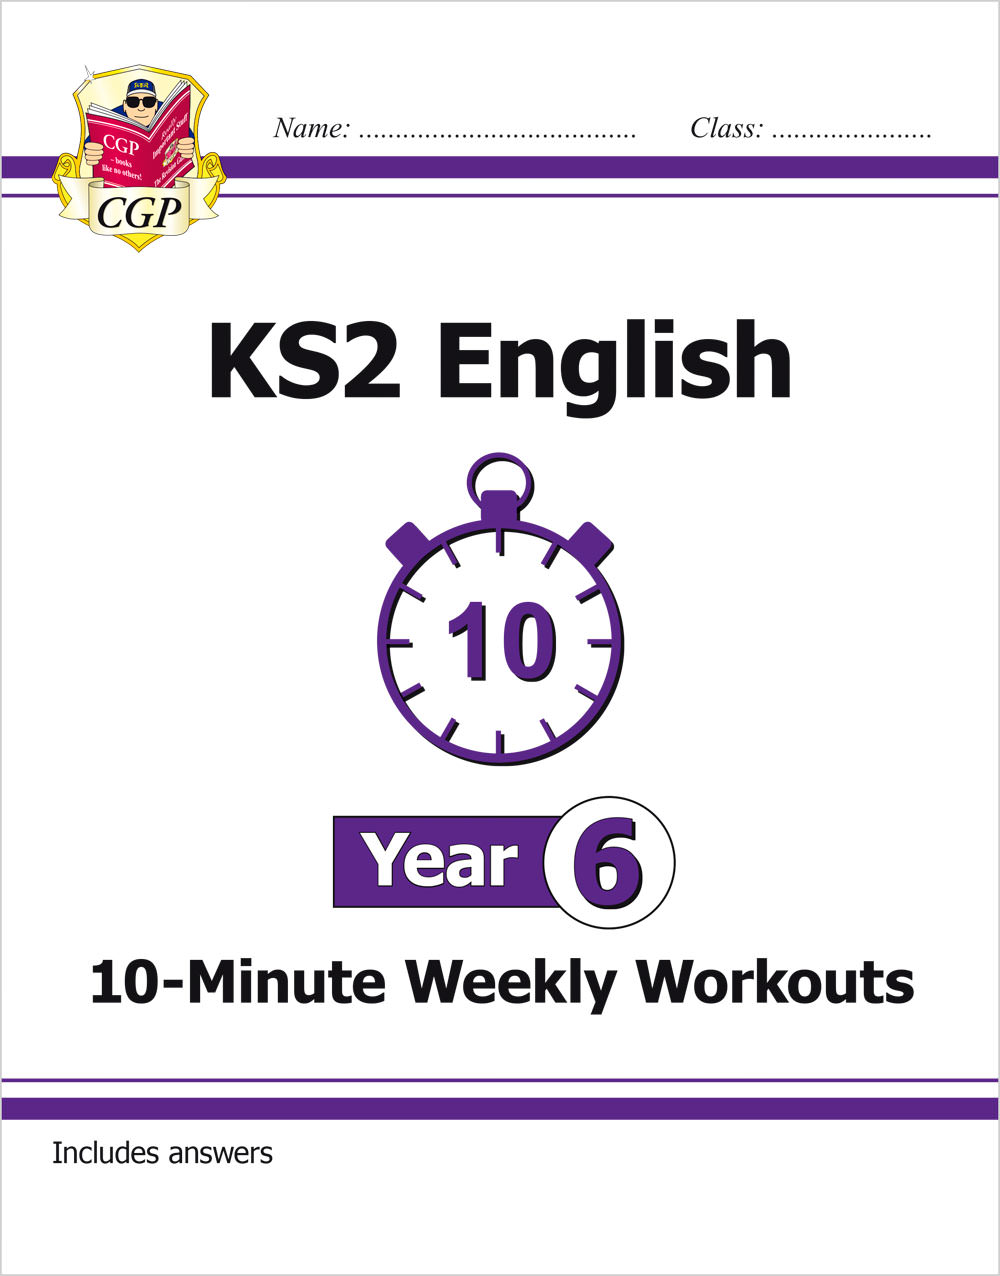 E6XW21 - New KS2 English 10-Minute Weekly Workouts - Year 6